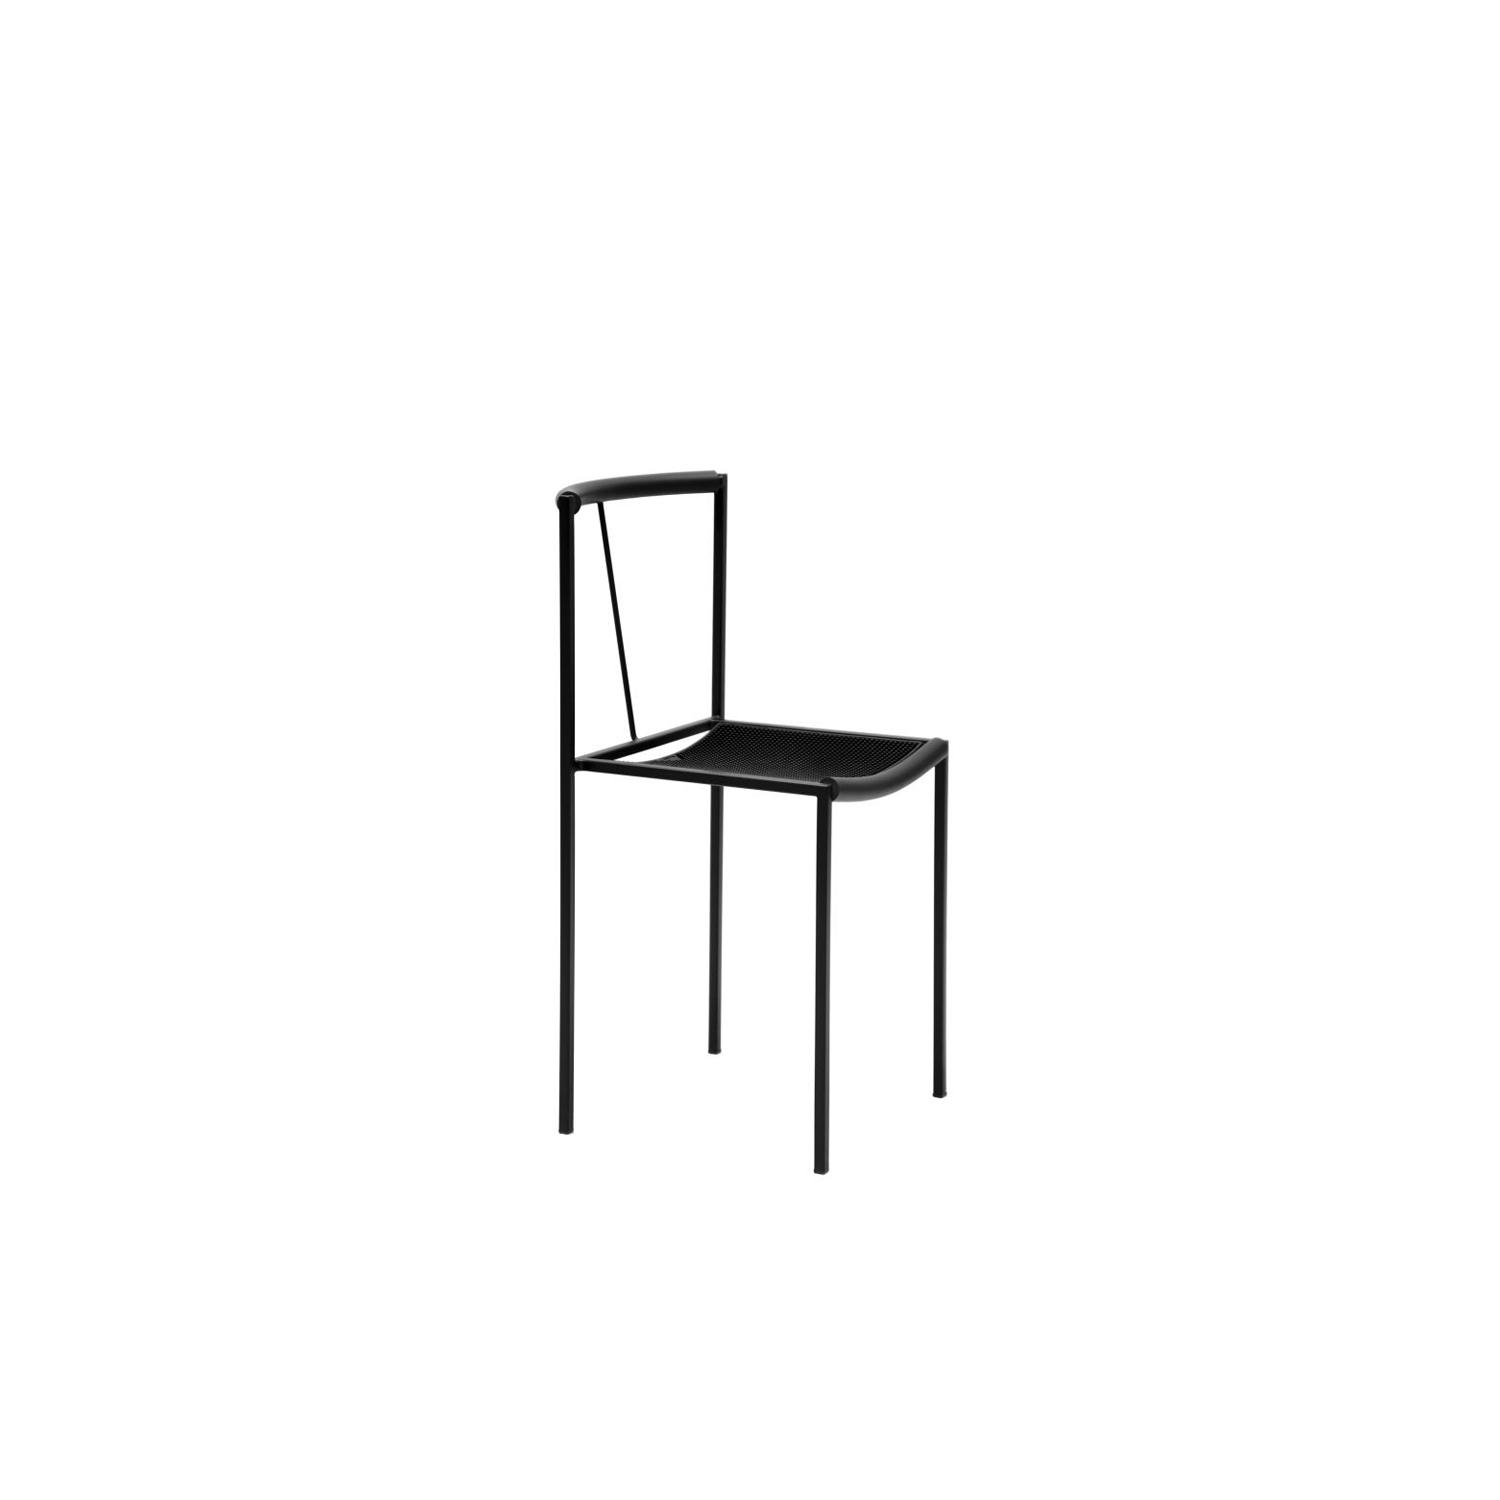 Sedia Chair - Designed in 1984 by Maurizio Peregalli, Sedia is an elegant modernist chair in all black square tubular-steel frame and rubber seating. This chair would look faultless around a dining room table as well as in a hallway